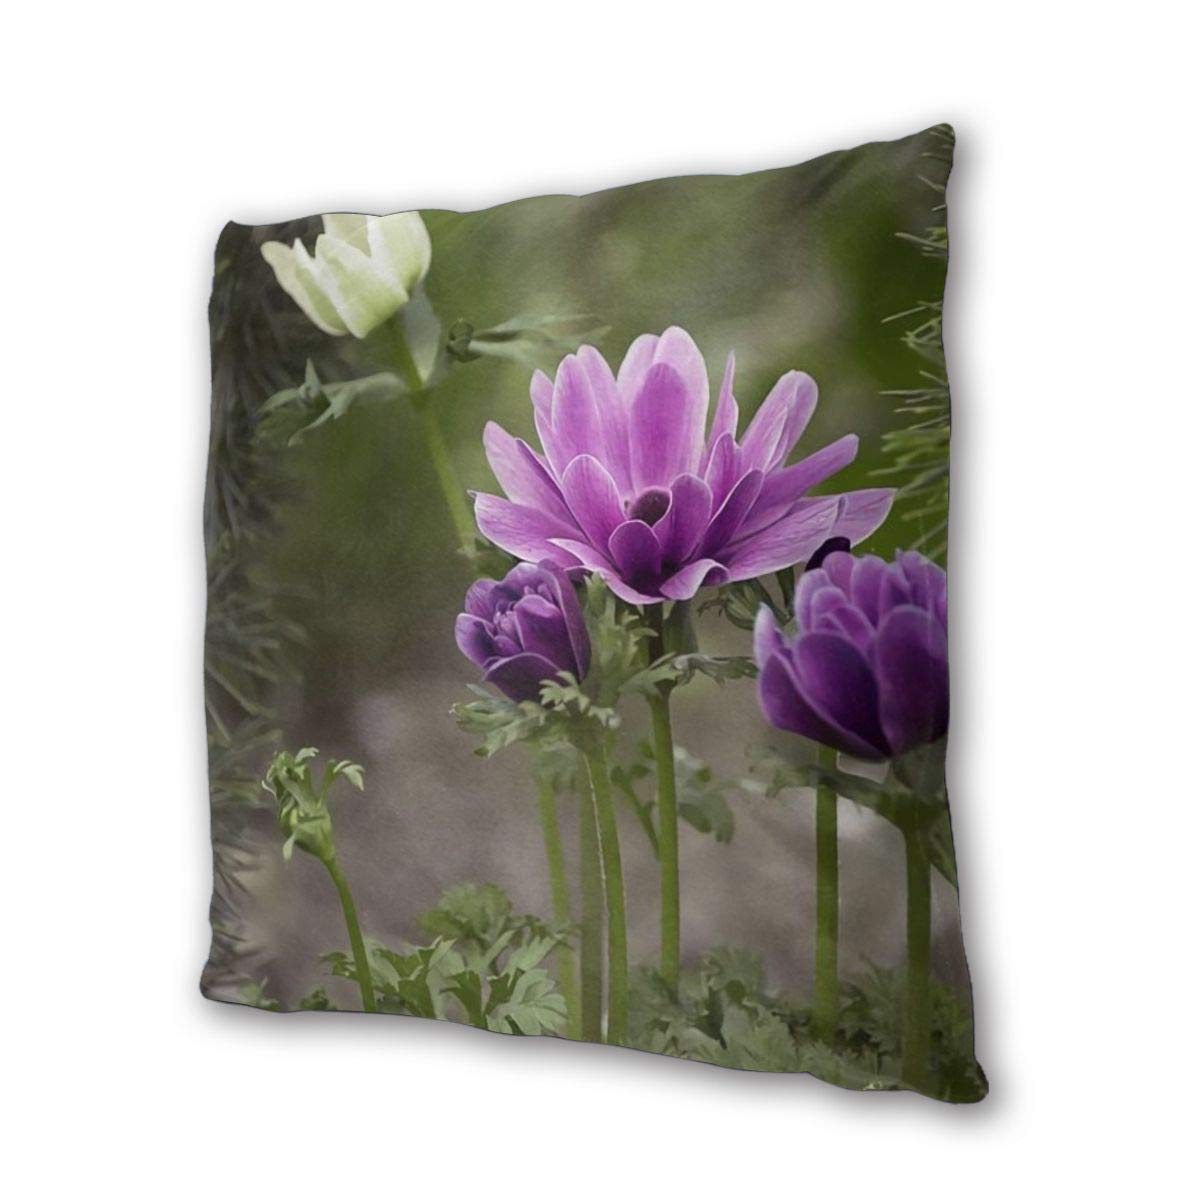 Square Pillow,Anemone Violet Purple,Pillow Inserts,Square Form Polyester,2 Packs,Standard//Multi-size,